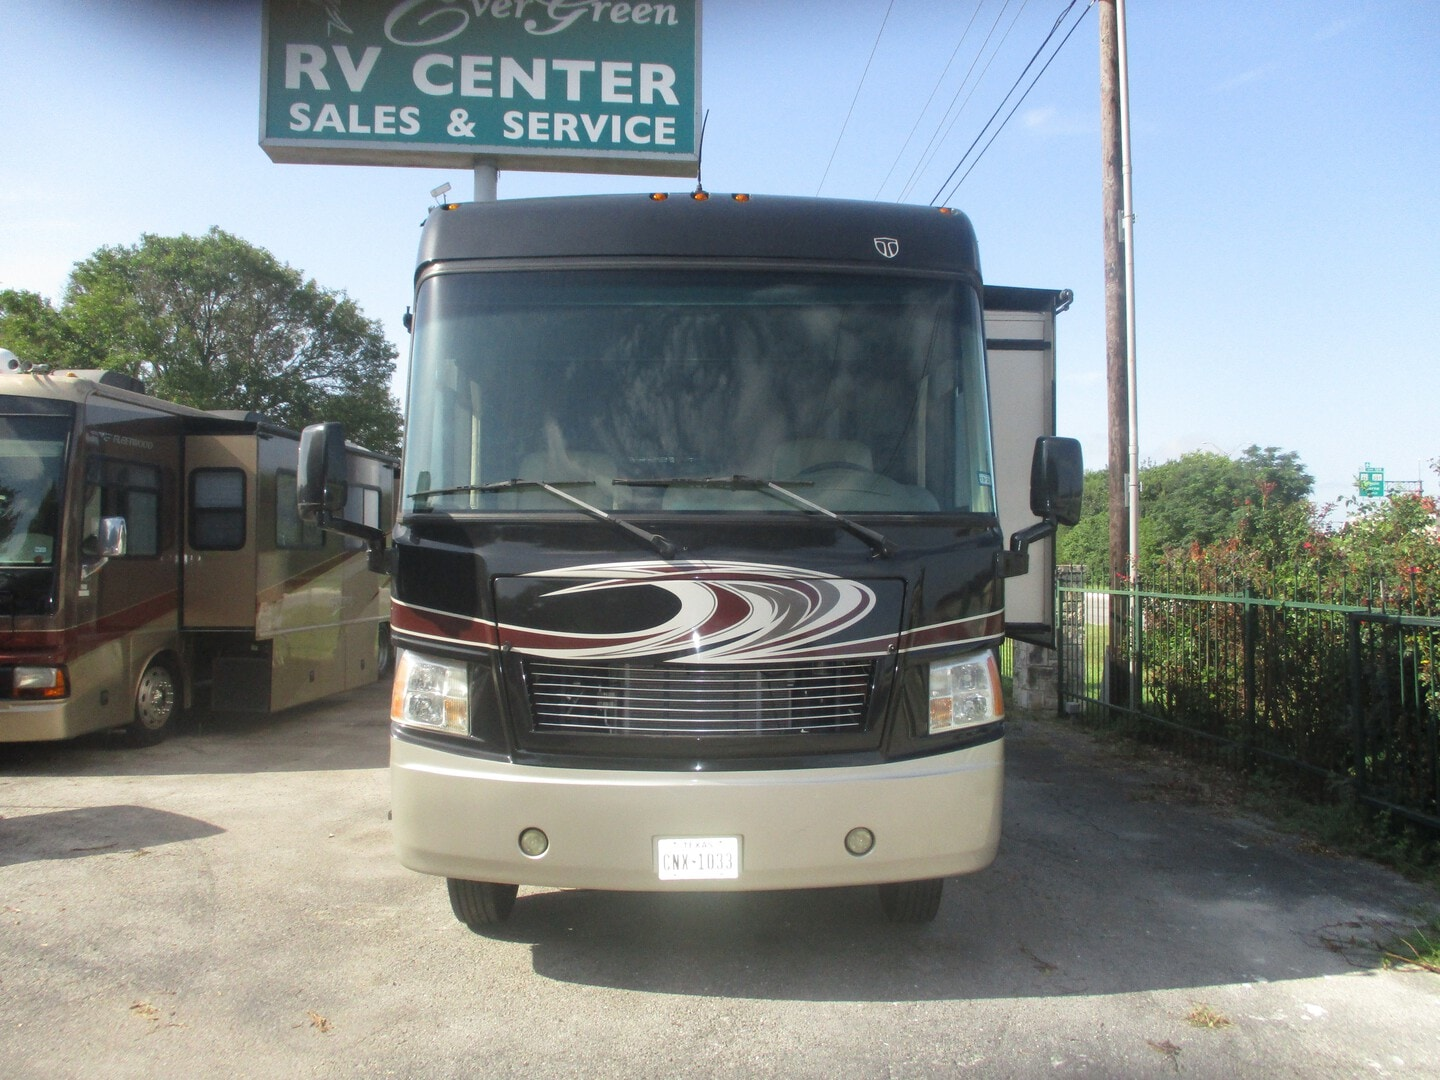 Used, 2014, Thor Motor Coach, Challenger 37GT, RV - Class A